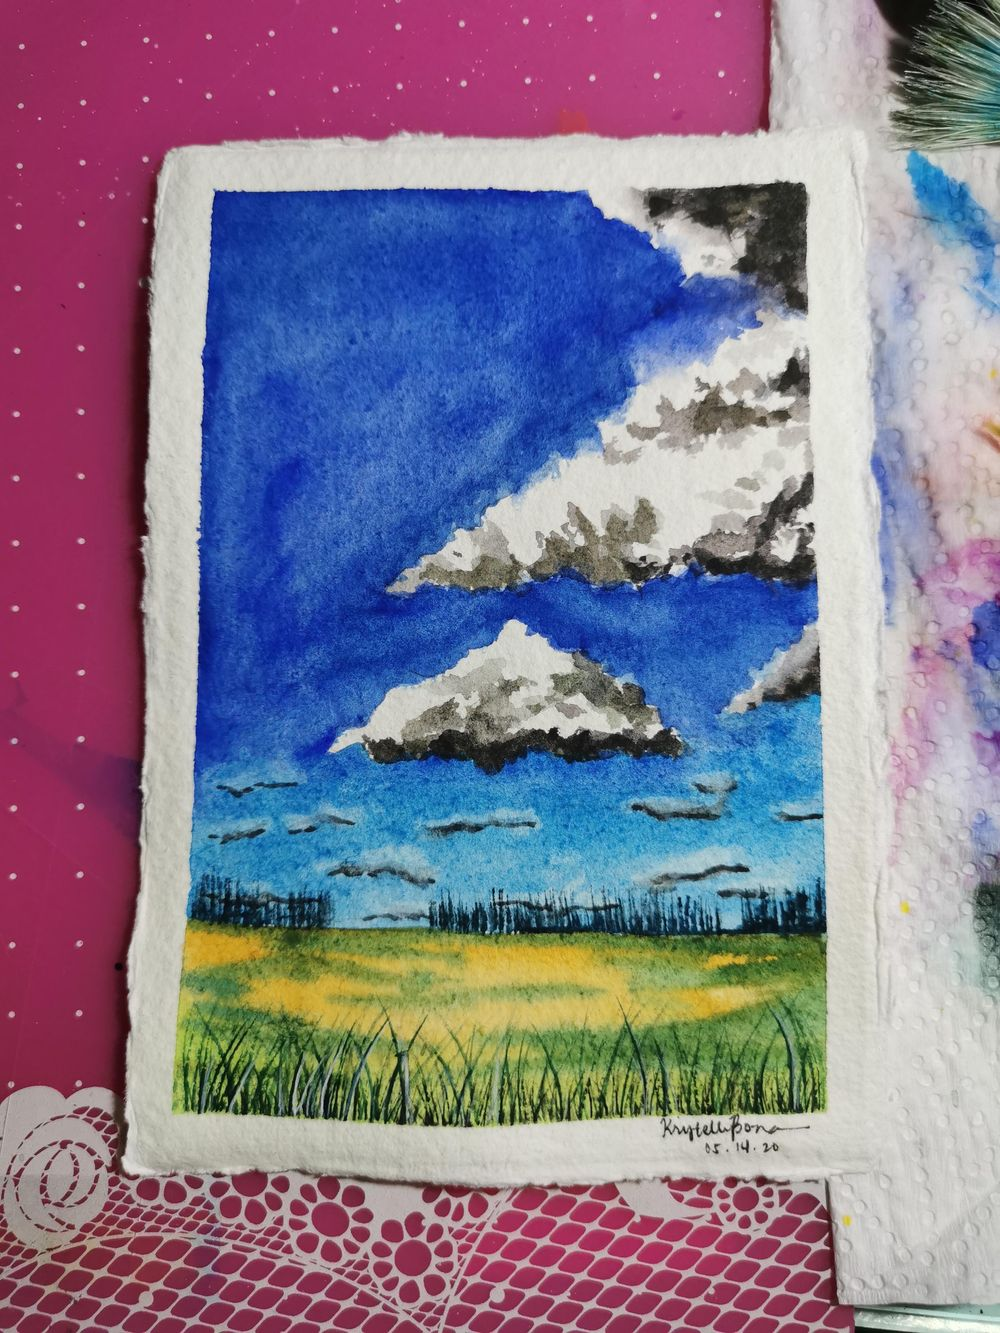 Clouds studies - image 3 - student project